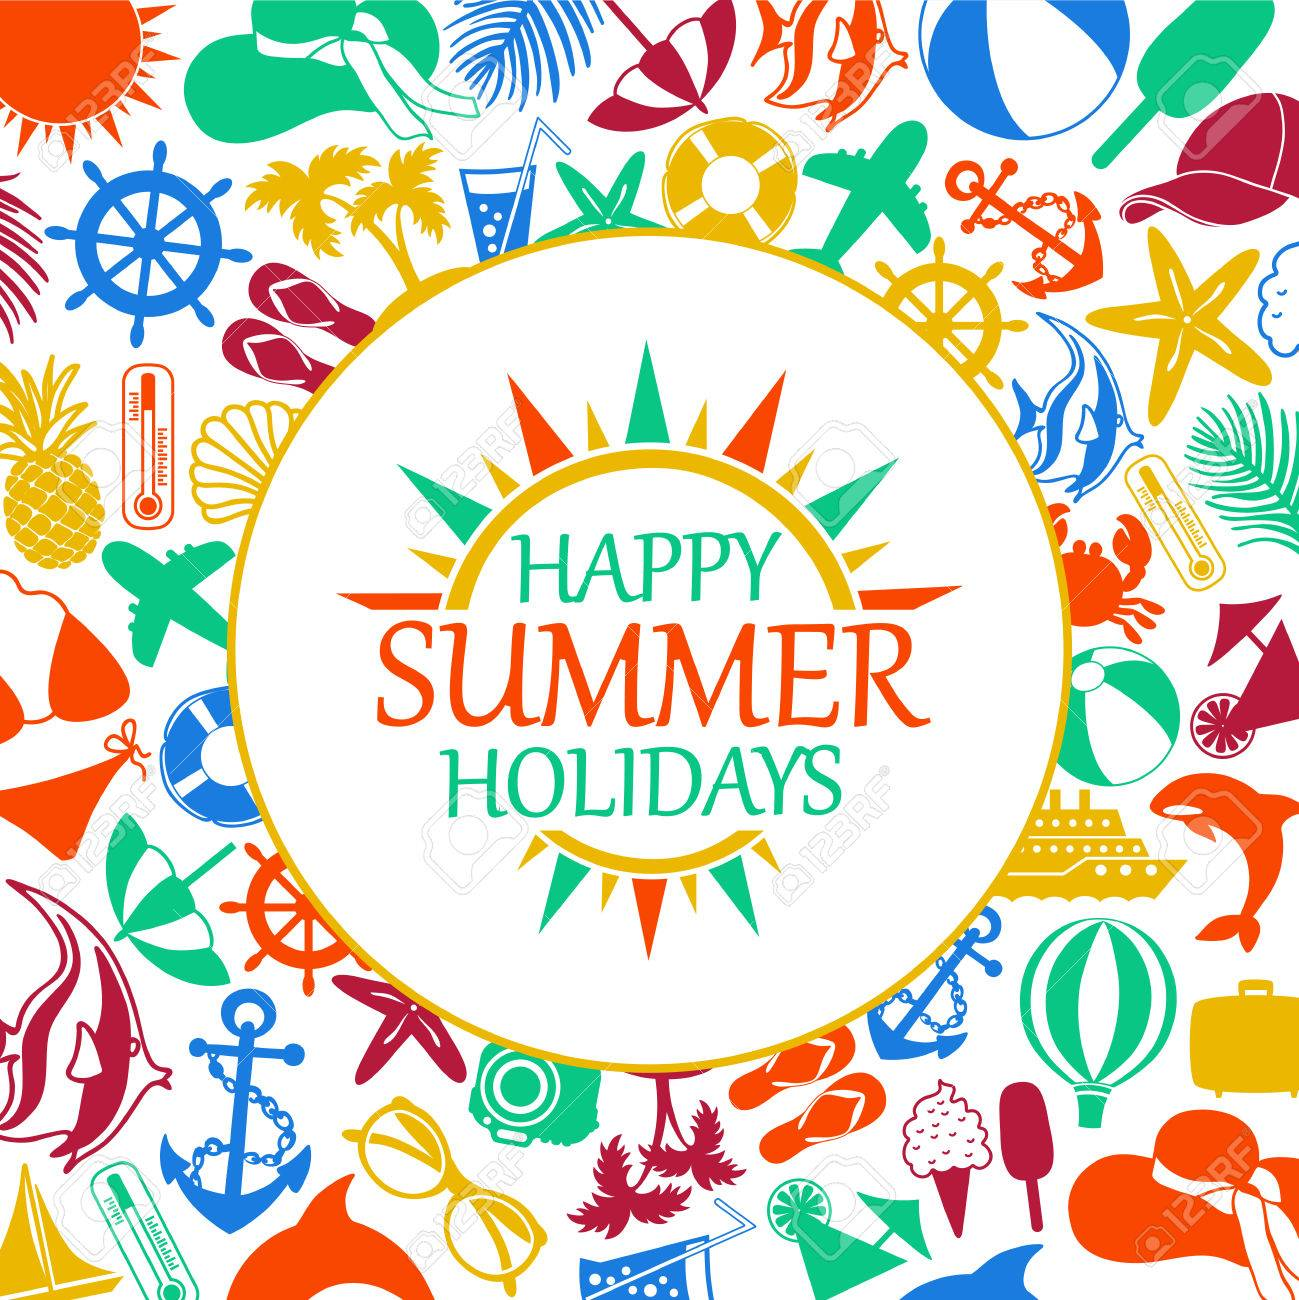 Happy Summer Holiday Colored Icons On A White Background Stock Vector